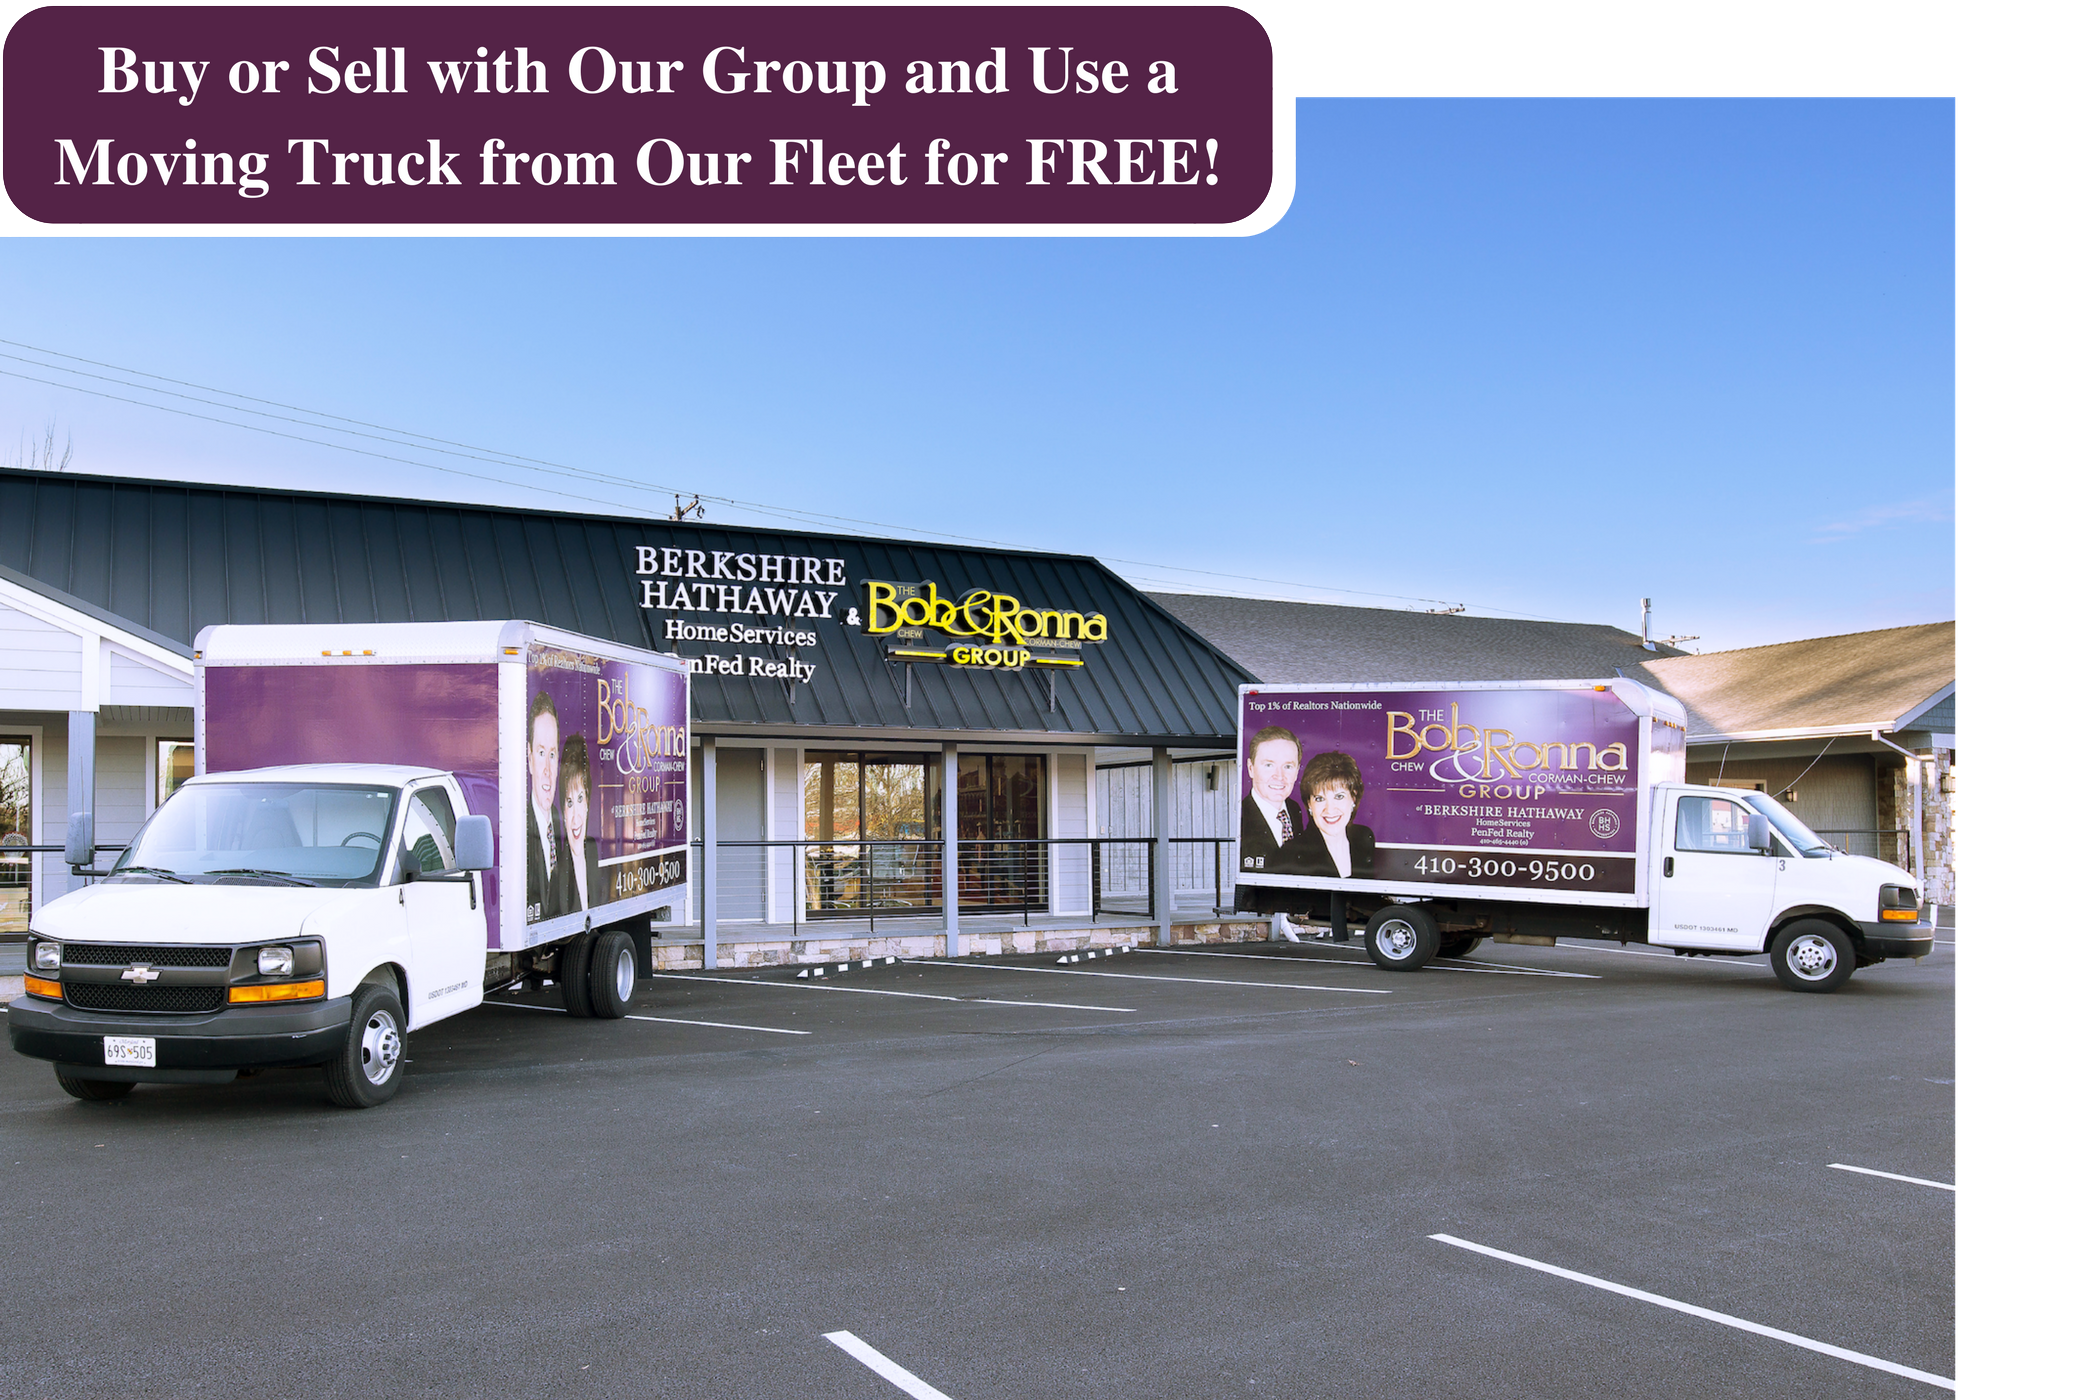 Use a Moving Truck for FREE - The Bob & Ronna Group